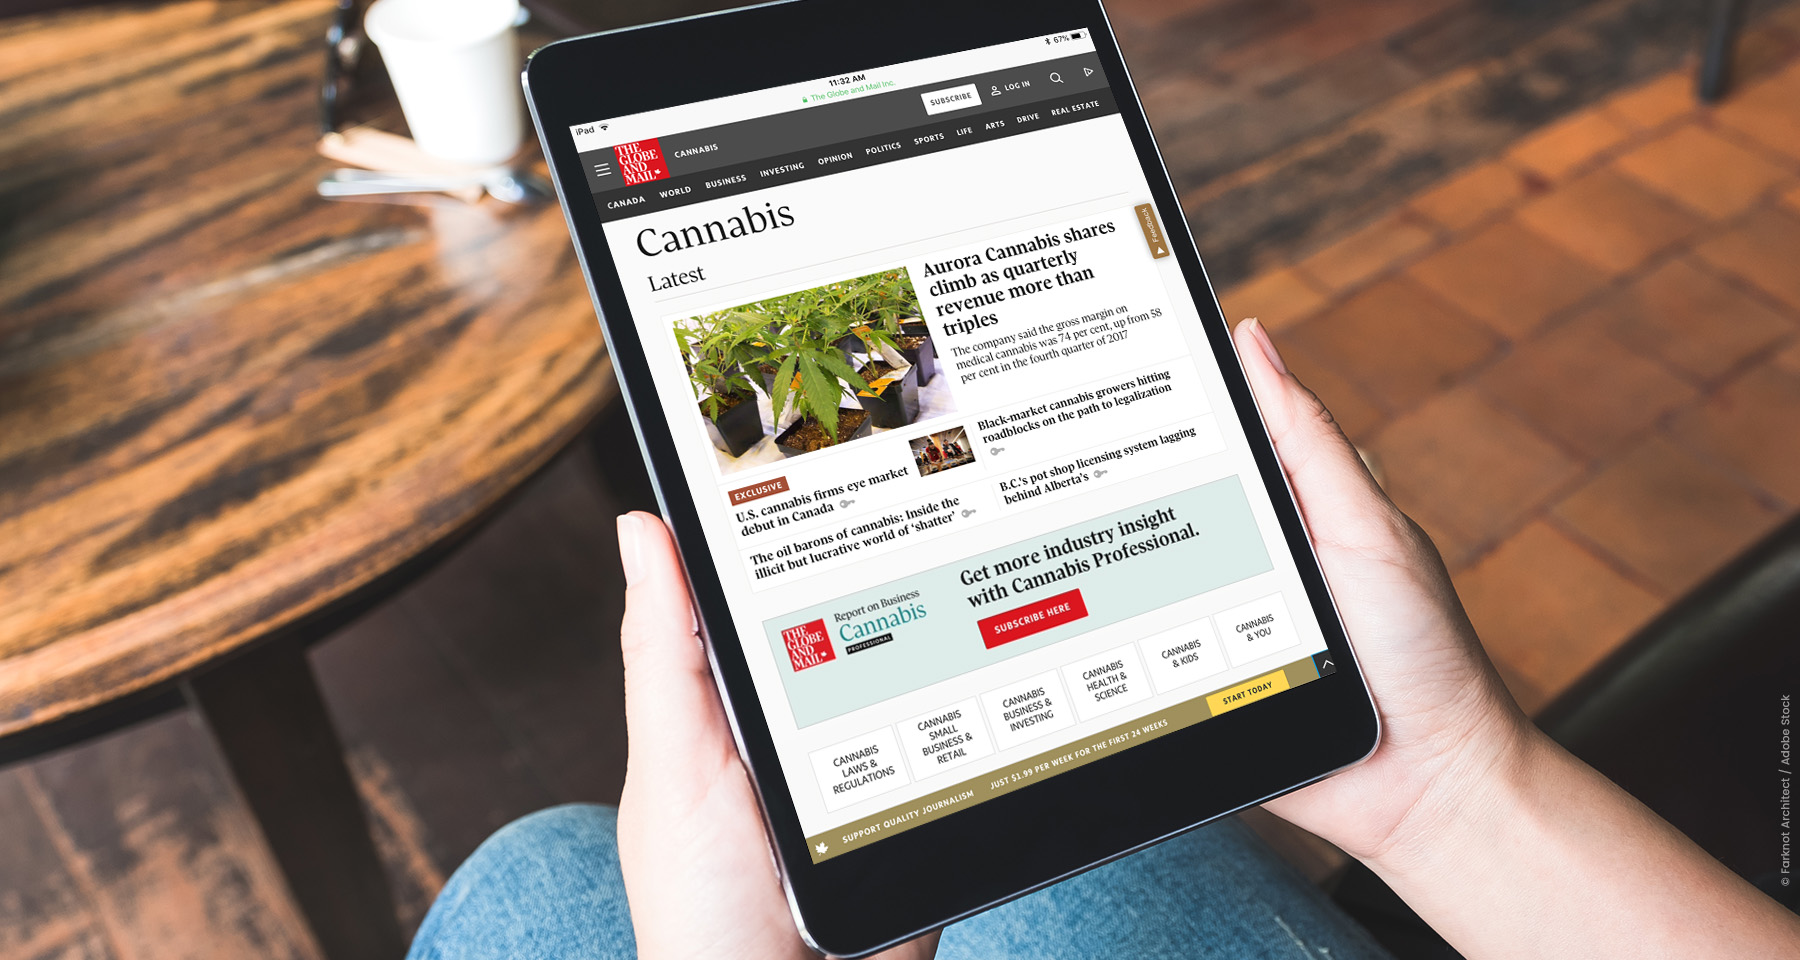 Globe and Mail launches news service for cannabis industry